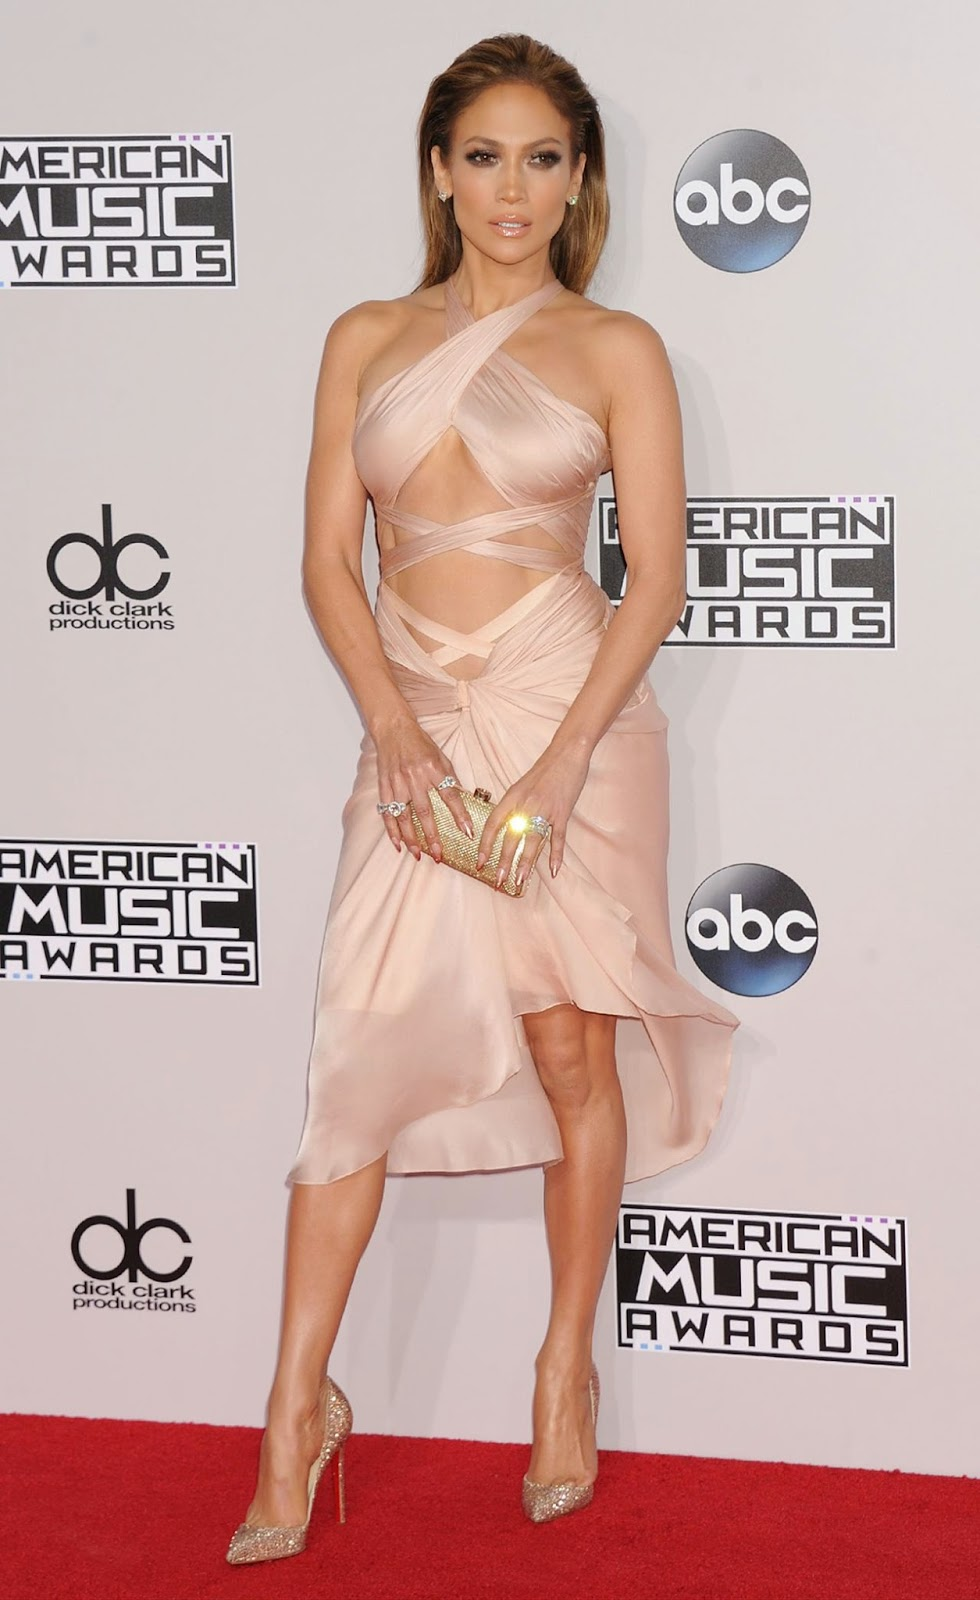 Jennifer Lopez, 51, shares naked cover for In The Morning